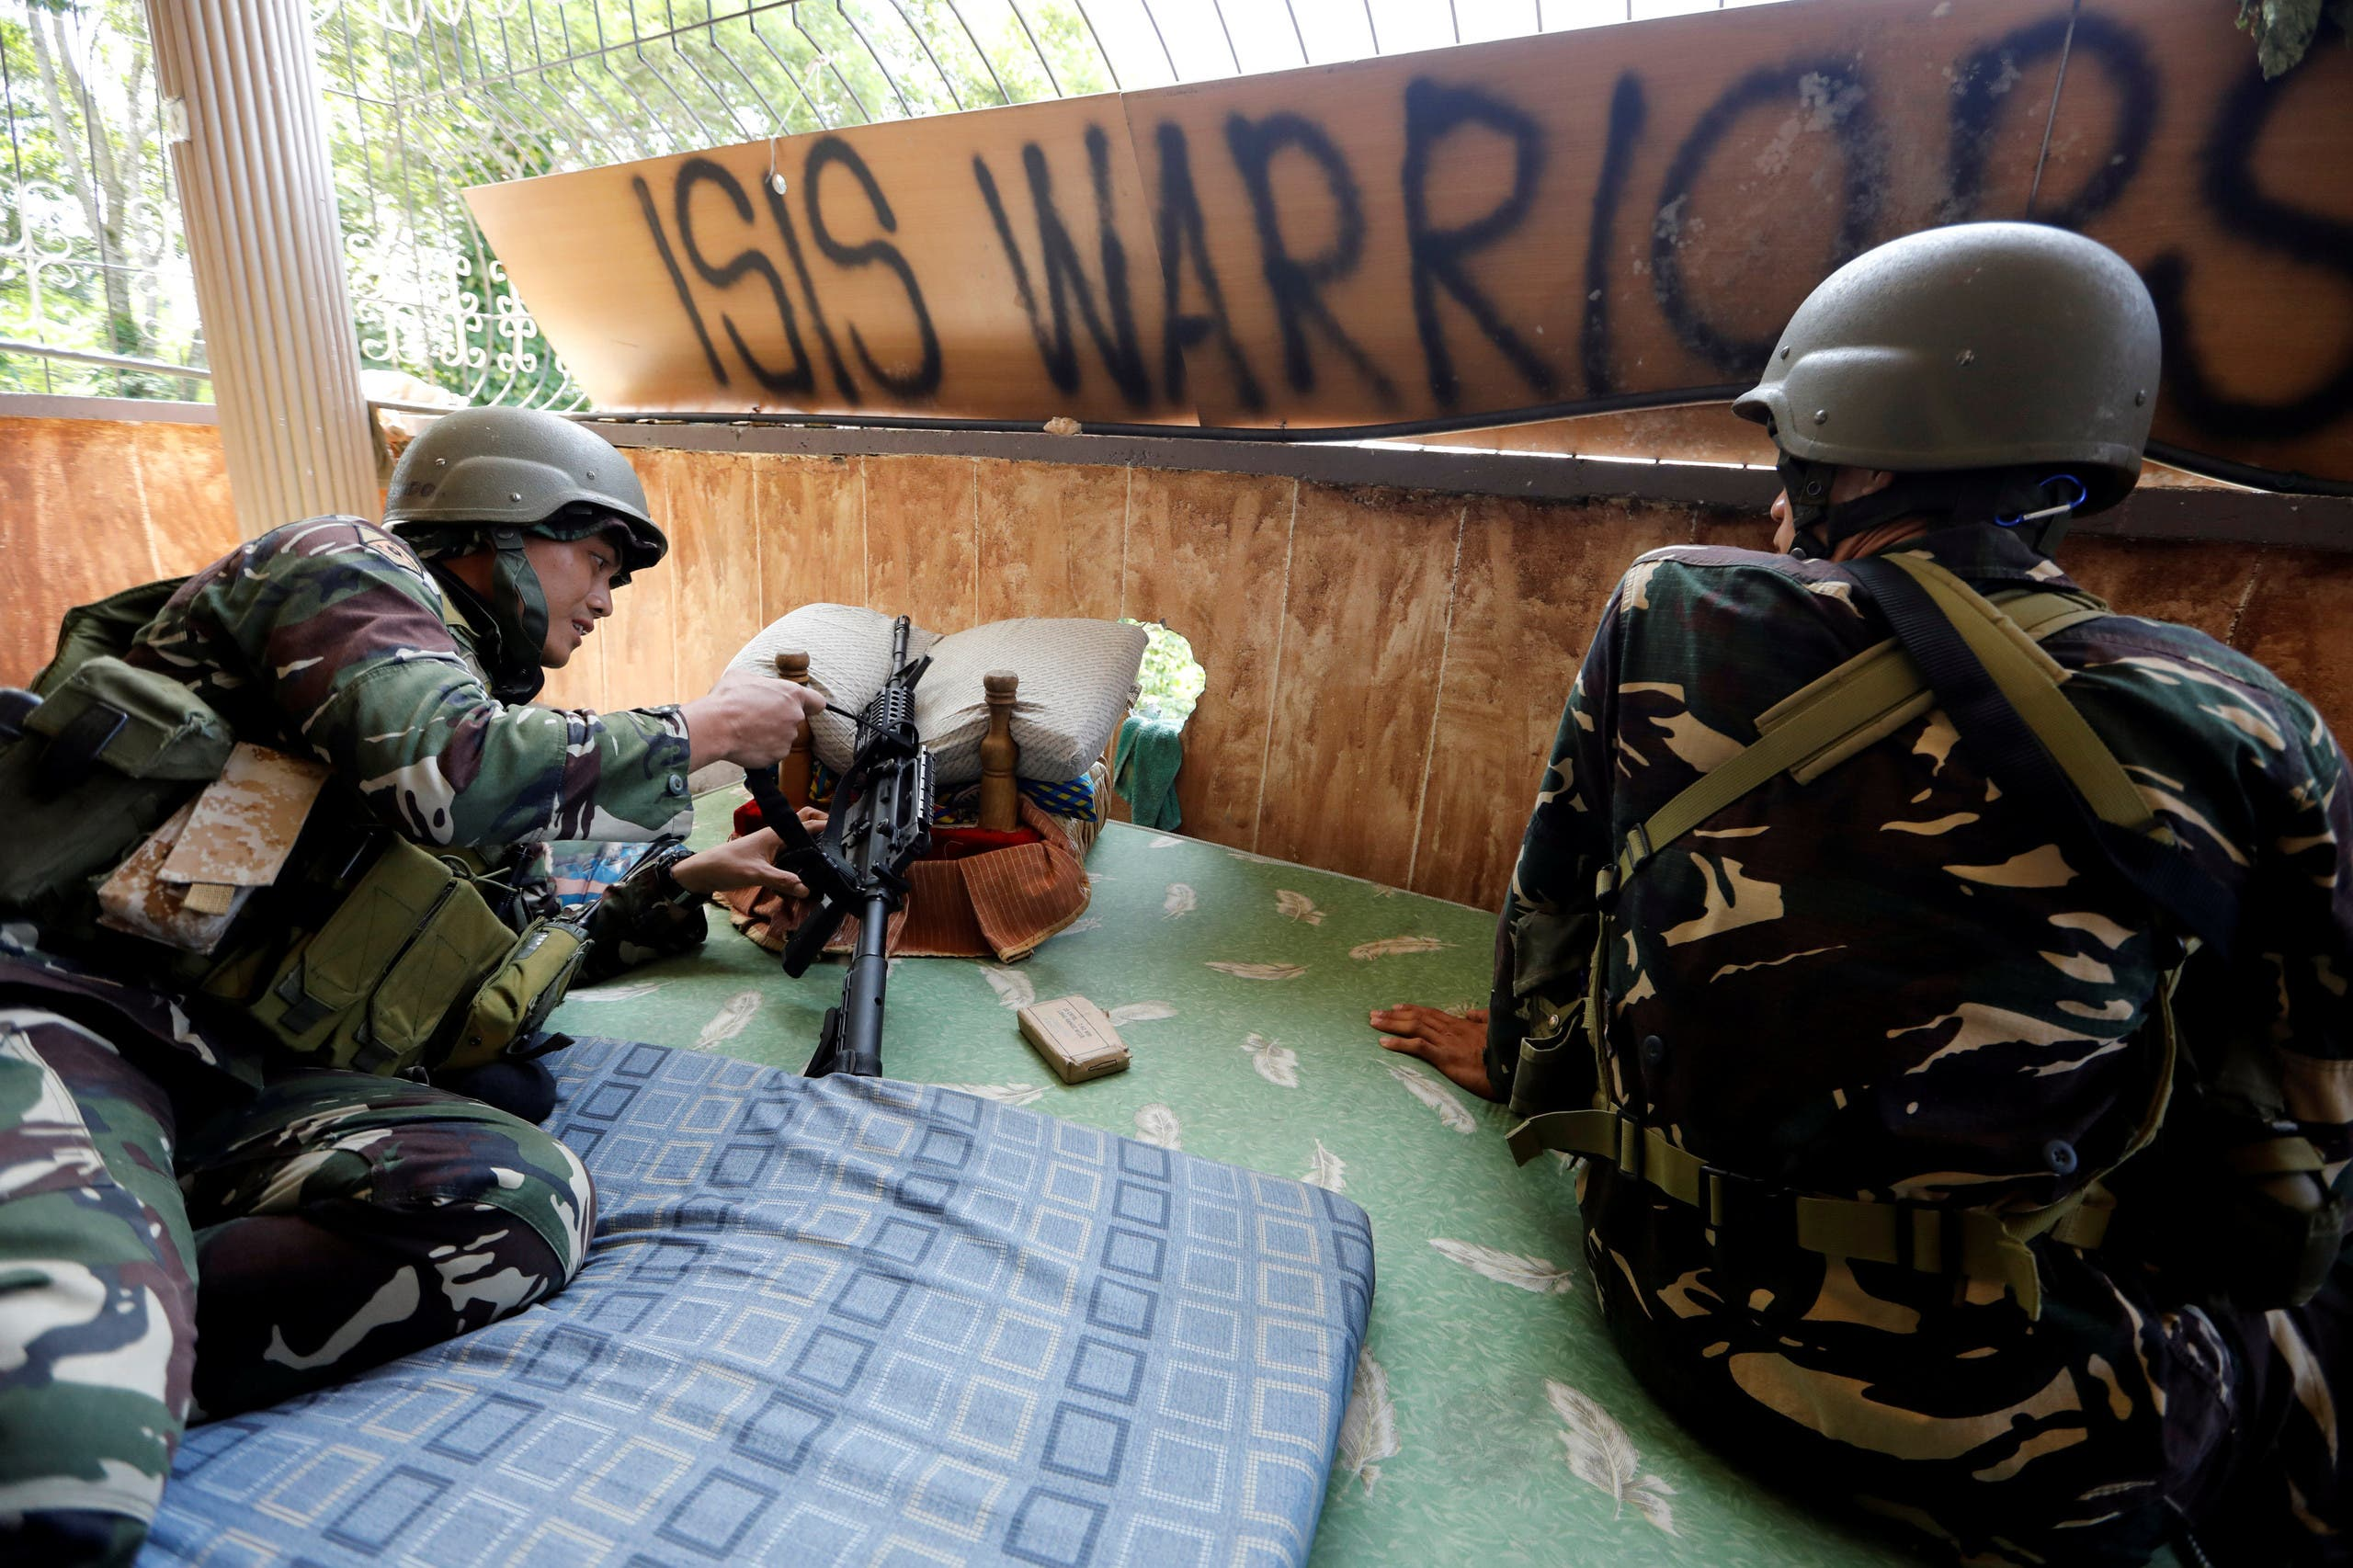 Filipino soldiers lie on a mattress at their combat position in a house as government troops continue their assault against insurgents from the Maute group in Marawi city, Philippines July 1, 2017. Reuters